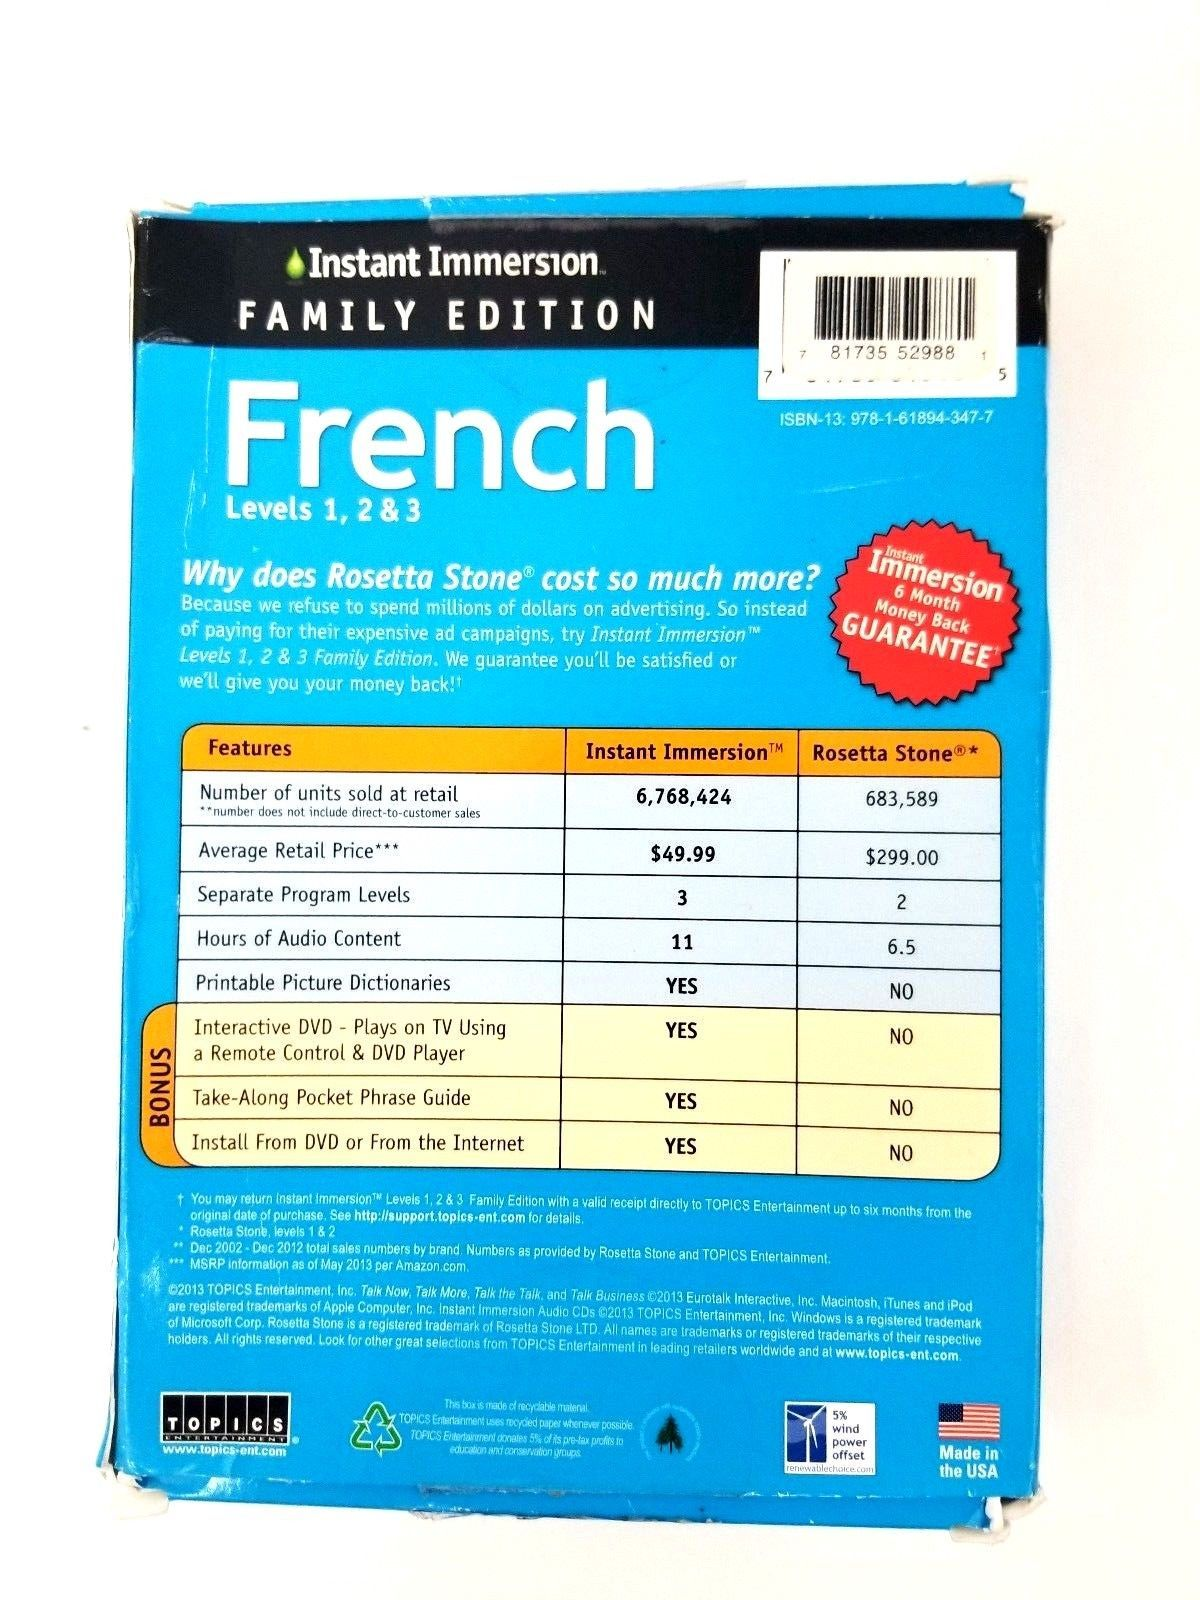 Instant Immersion Family Edition French Levels 1,2 & 3 PC & Mac Foreign Language image 2